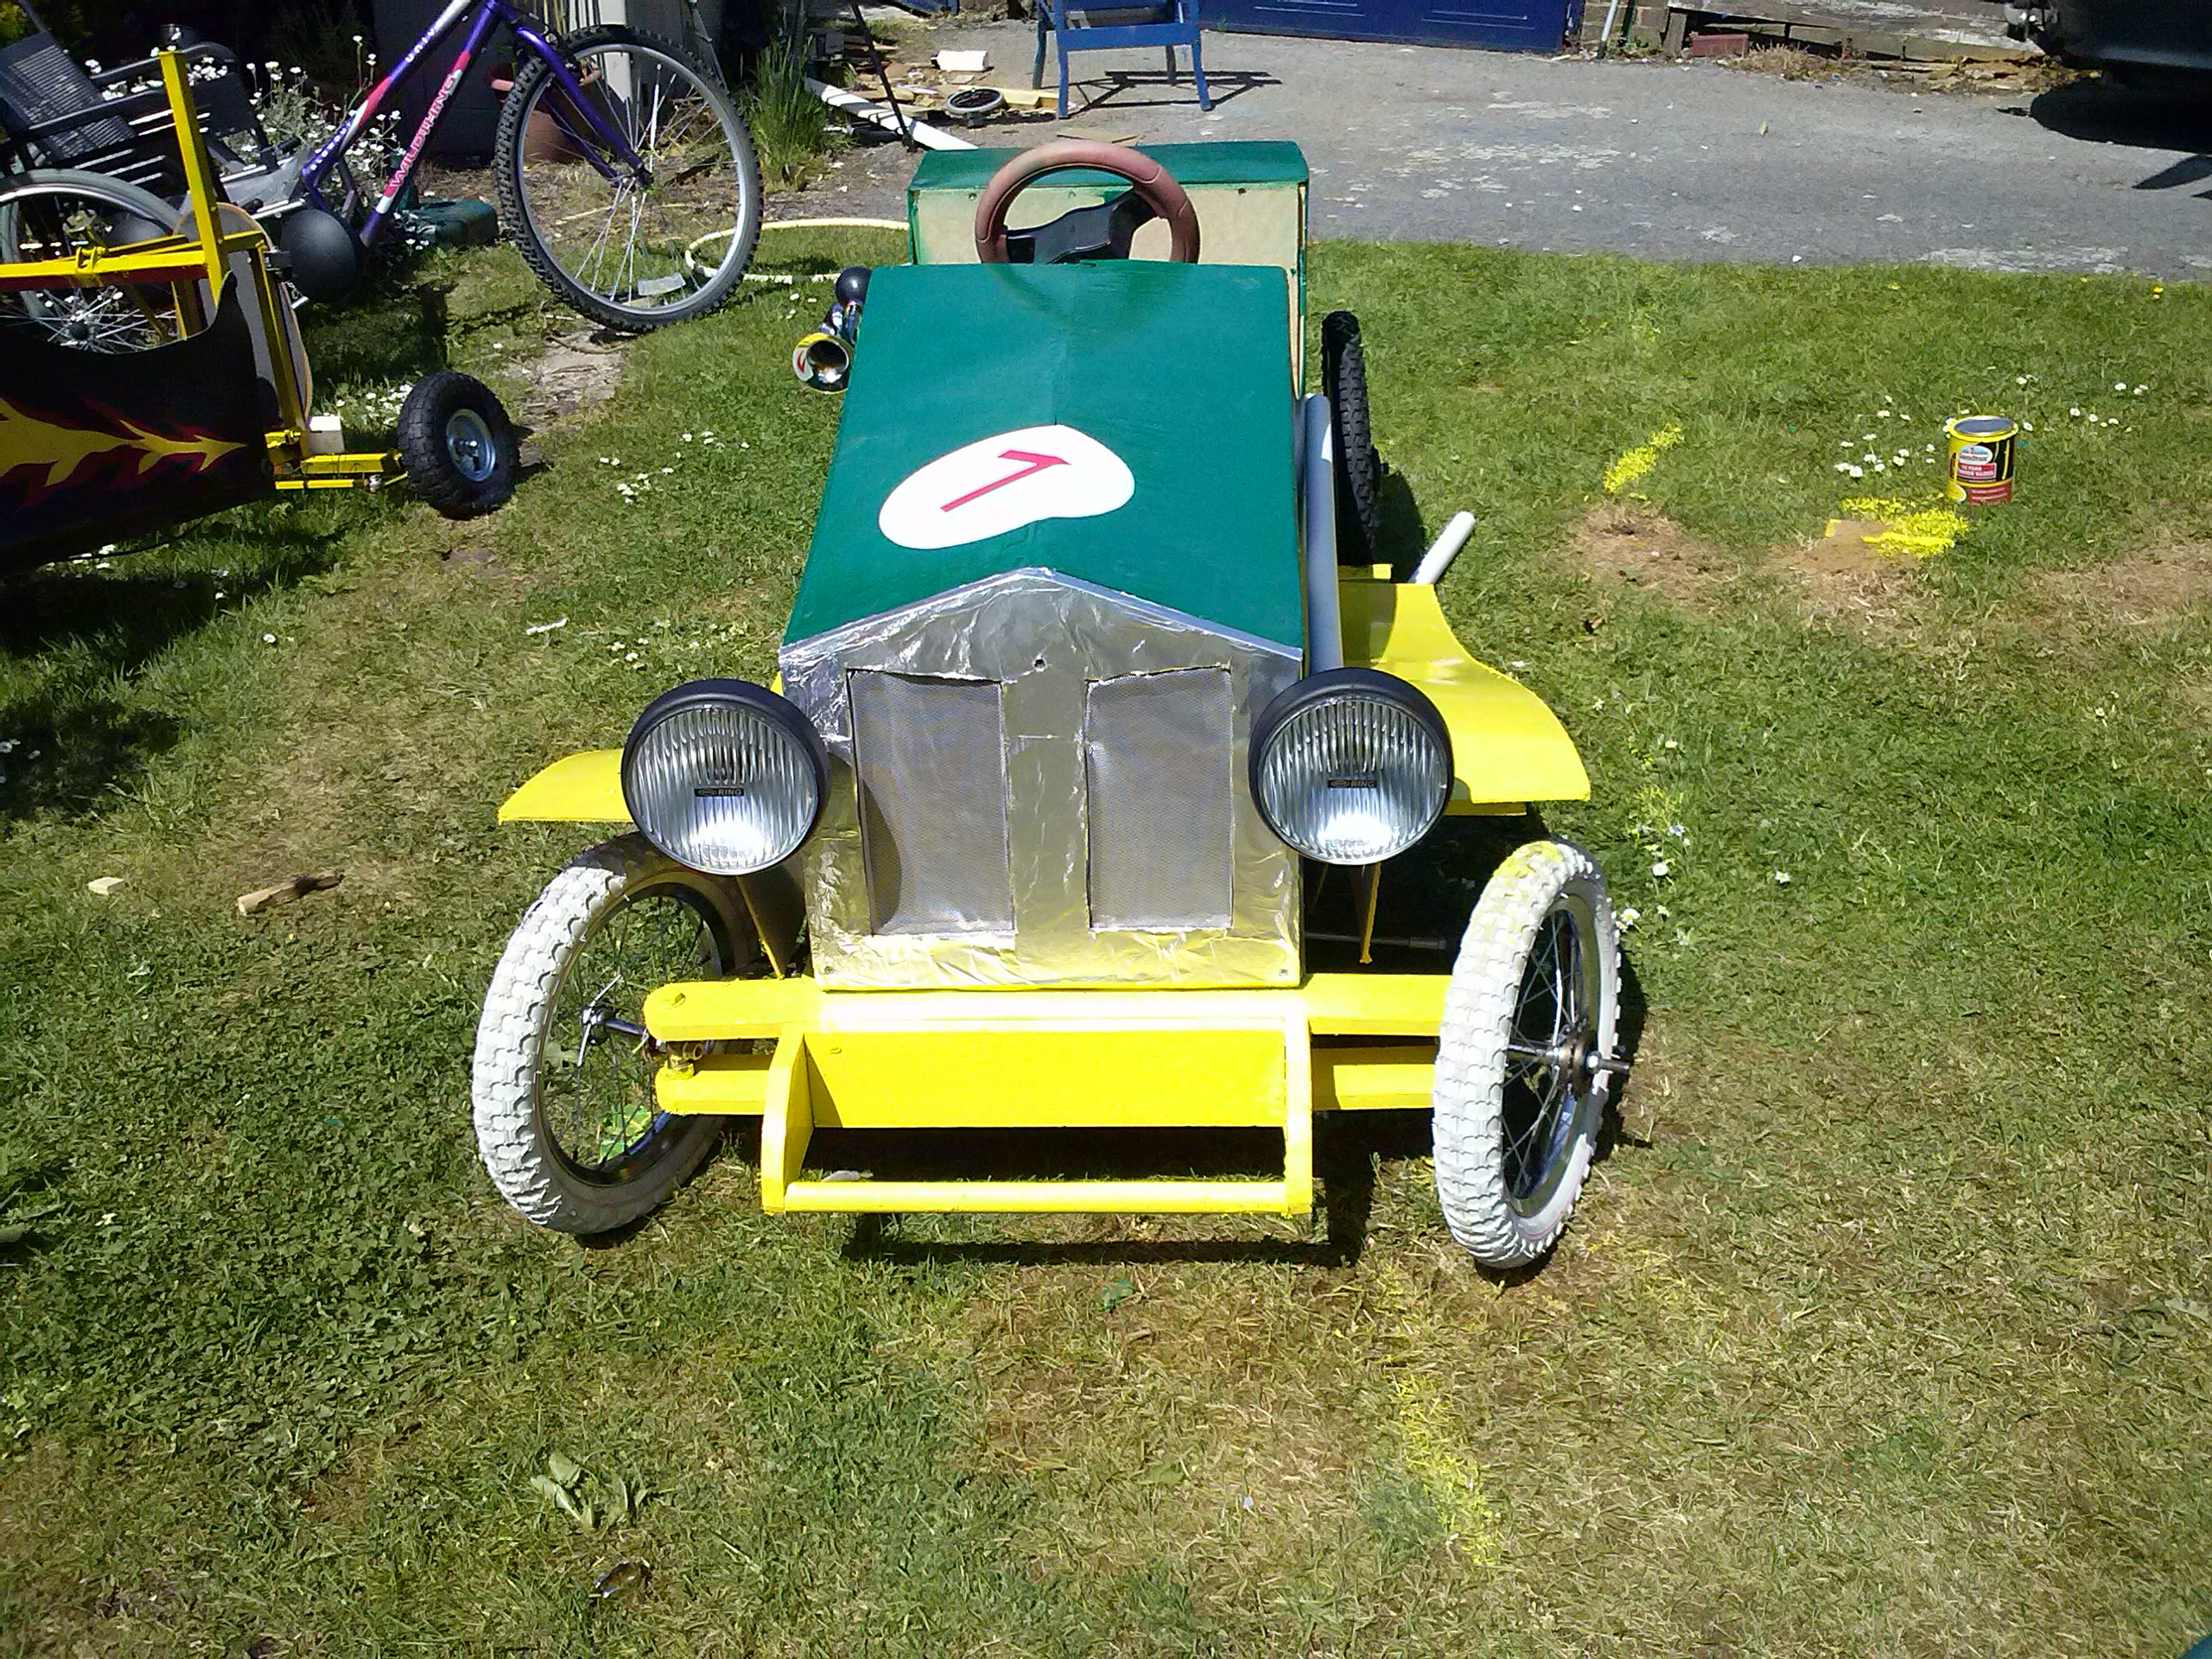 Picture of The Mollymobile Soap Box Transformation Into Chitty Chitty Bang Bang